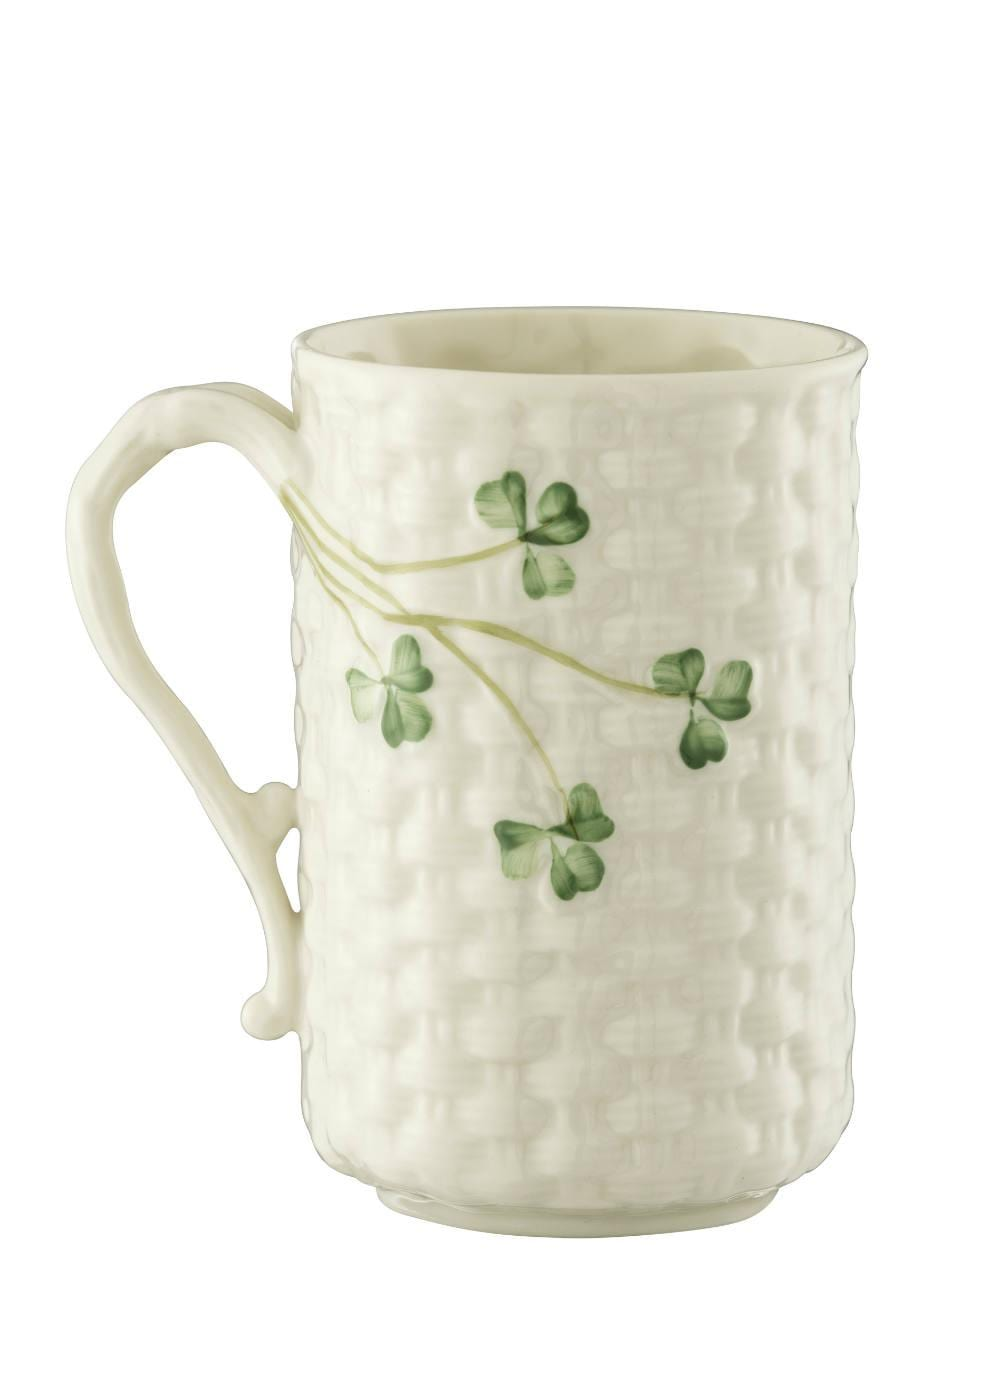 The Belleek Classic Gaelic Coffee Mug: A Touch of Irish Heritage For Your Morning Coffee